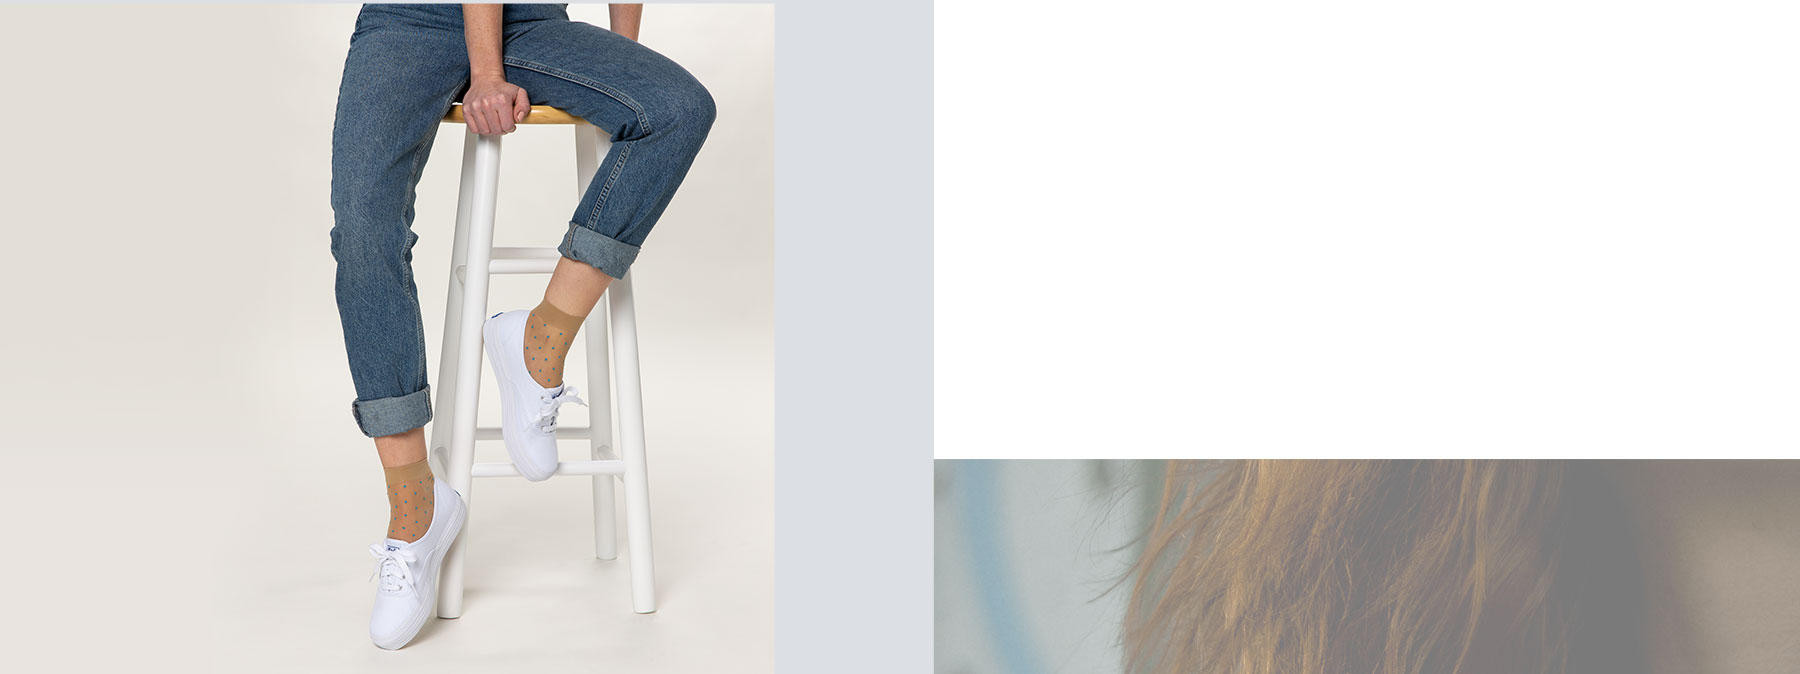 A woamn sitting on a stool in jeans and white keds cushioned platform sneakers.